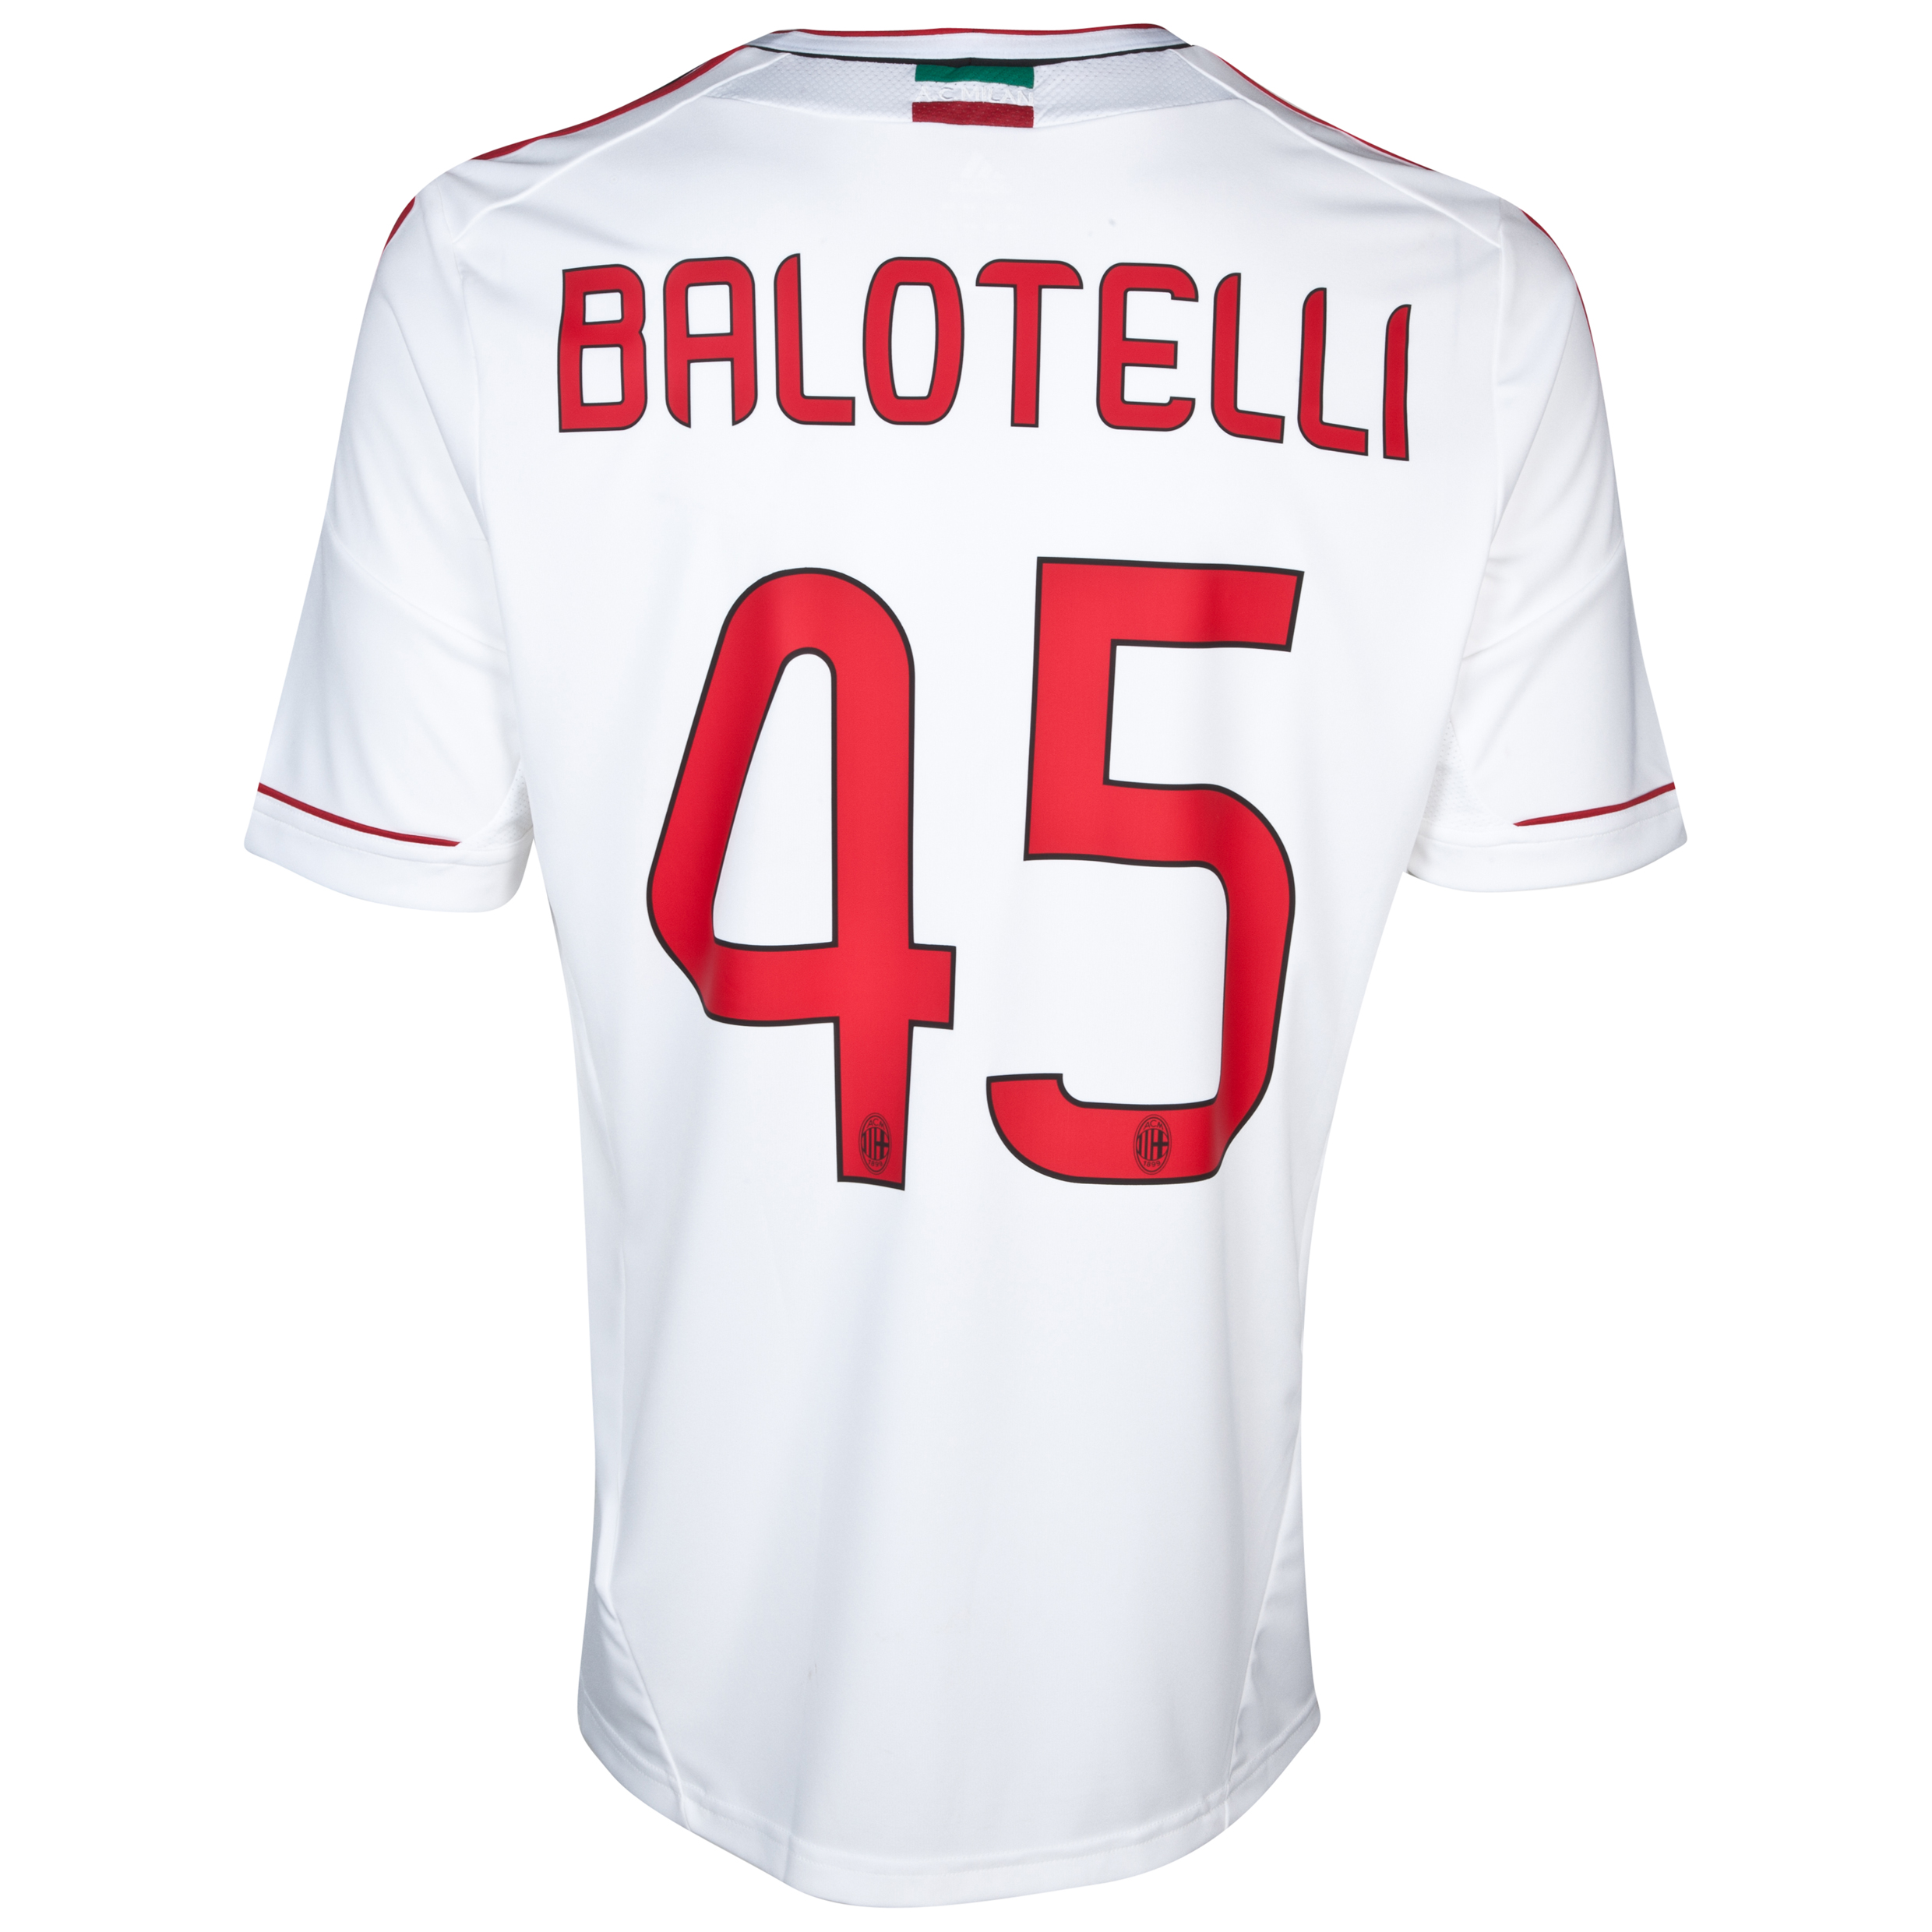 AC Milan Away Shirt 2012/13 - Kids with Balotelli 45 printing